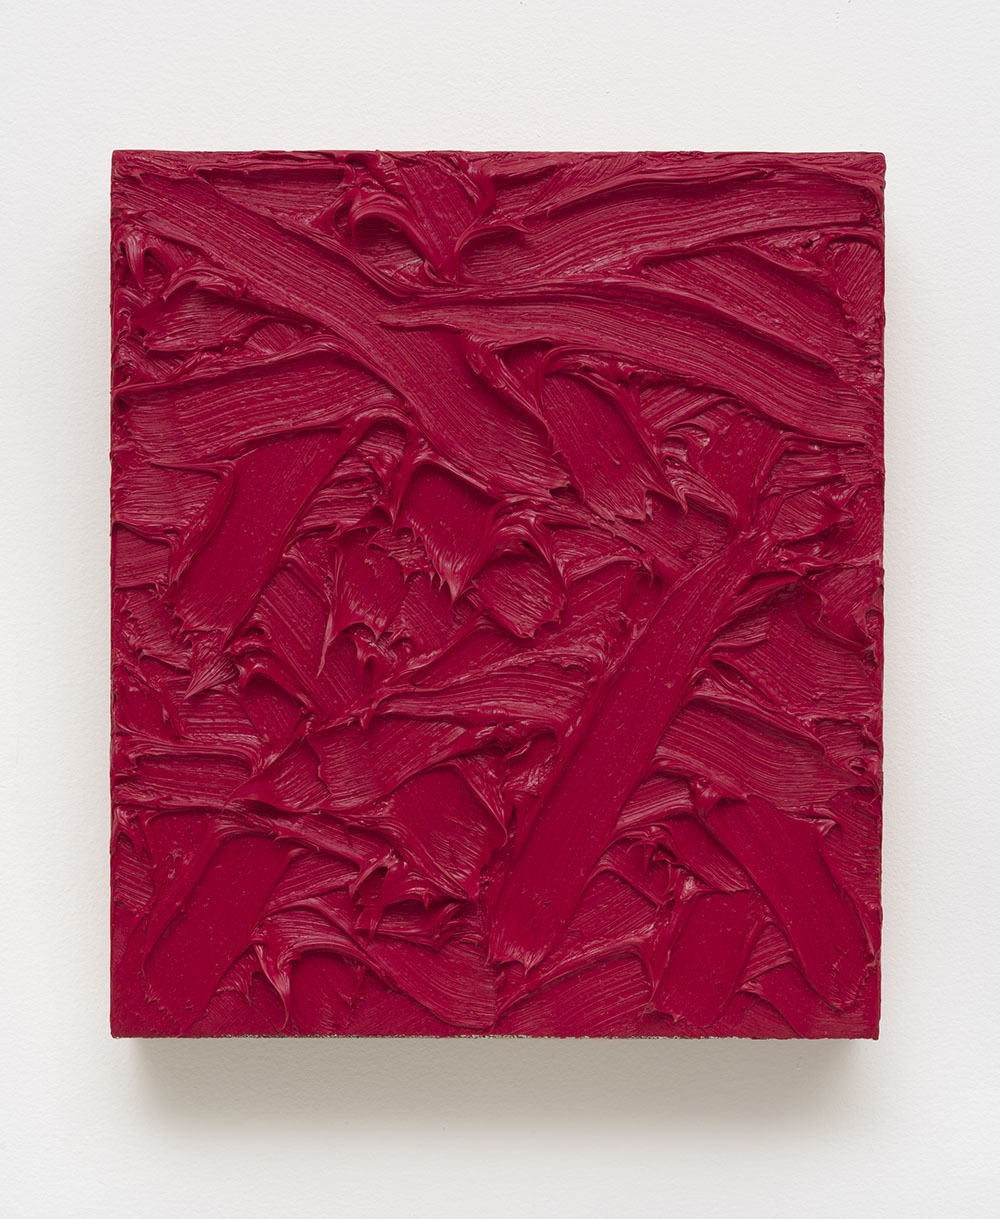 James Hayward, Abstract #176, 2012. Oil on canvas on wood panel 15 x 13 in (38.1 x 33.02 cm)